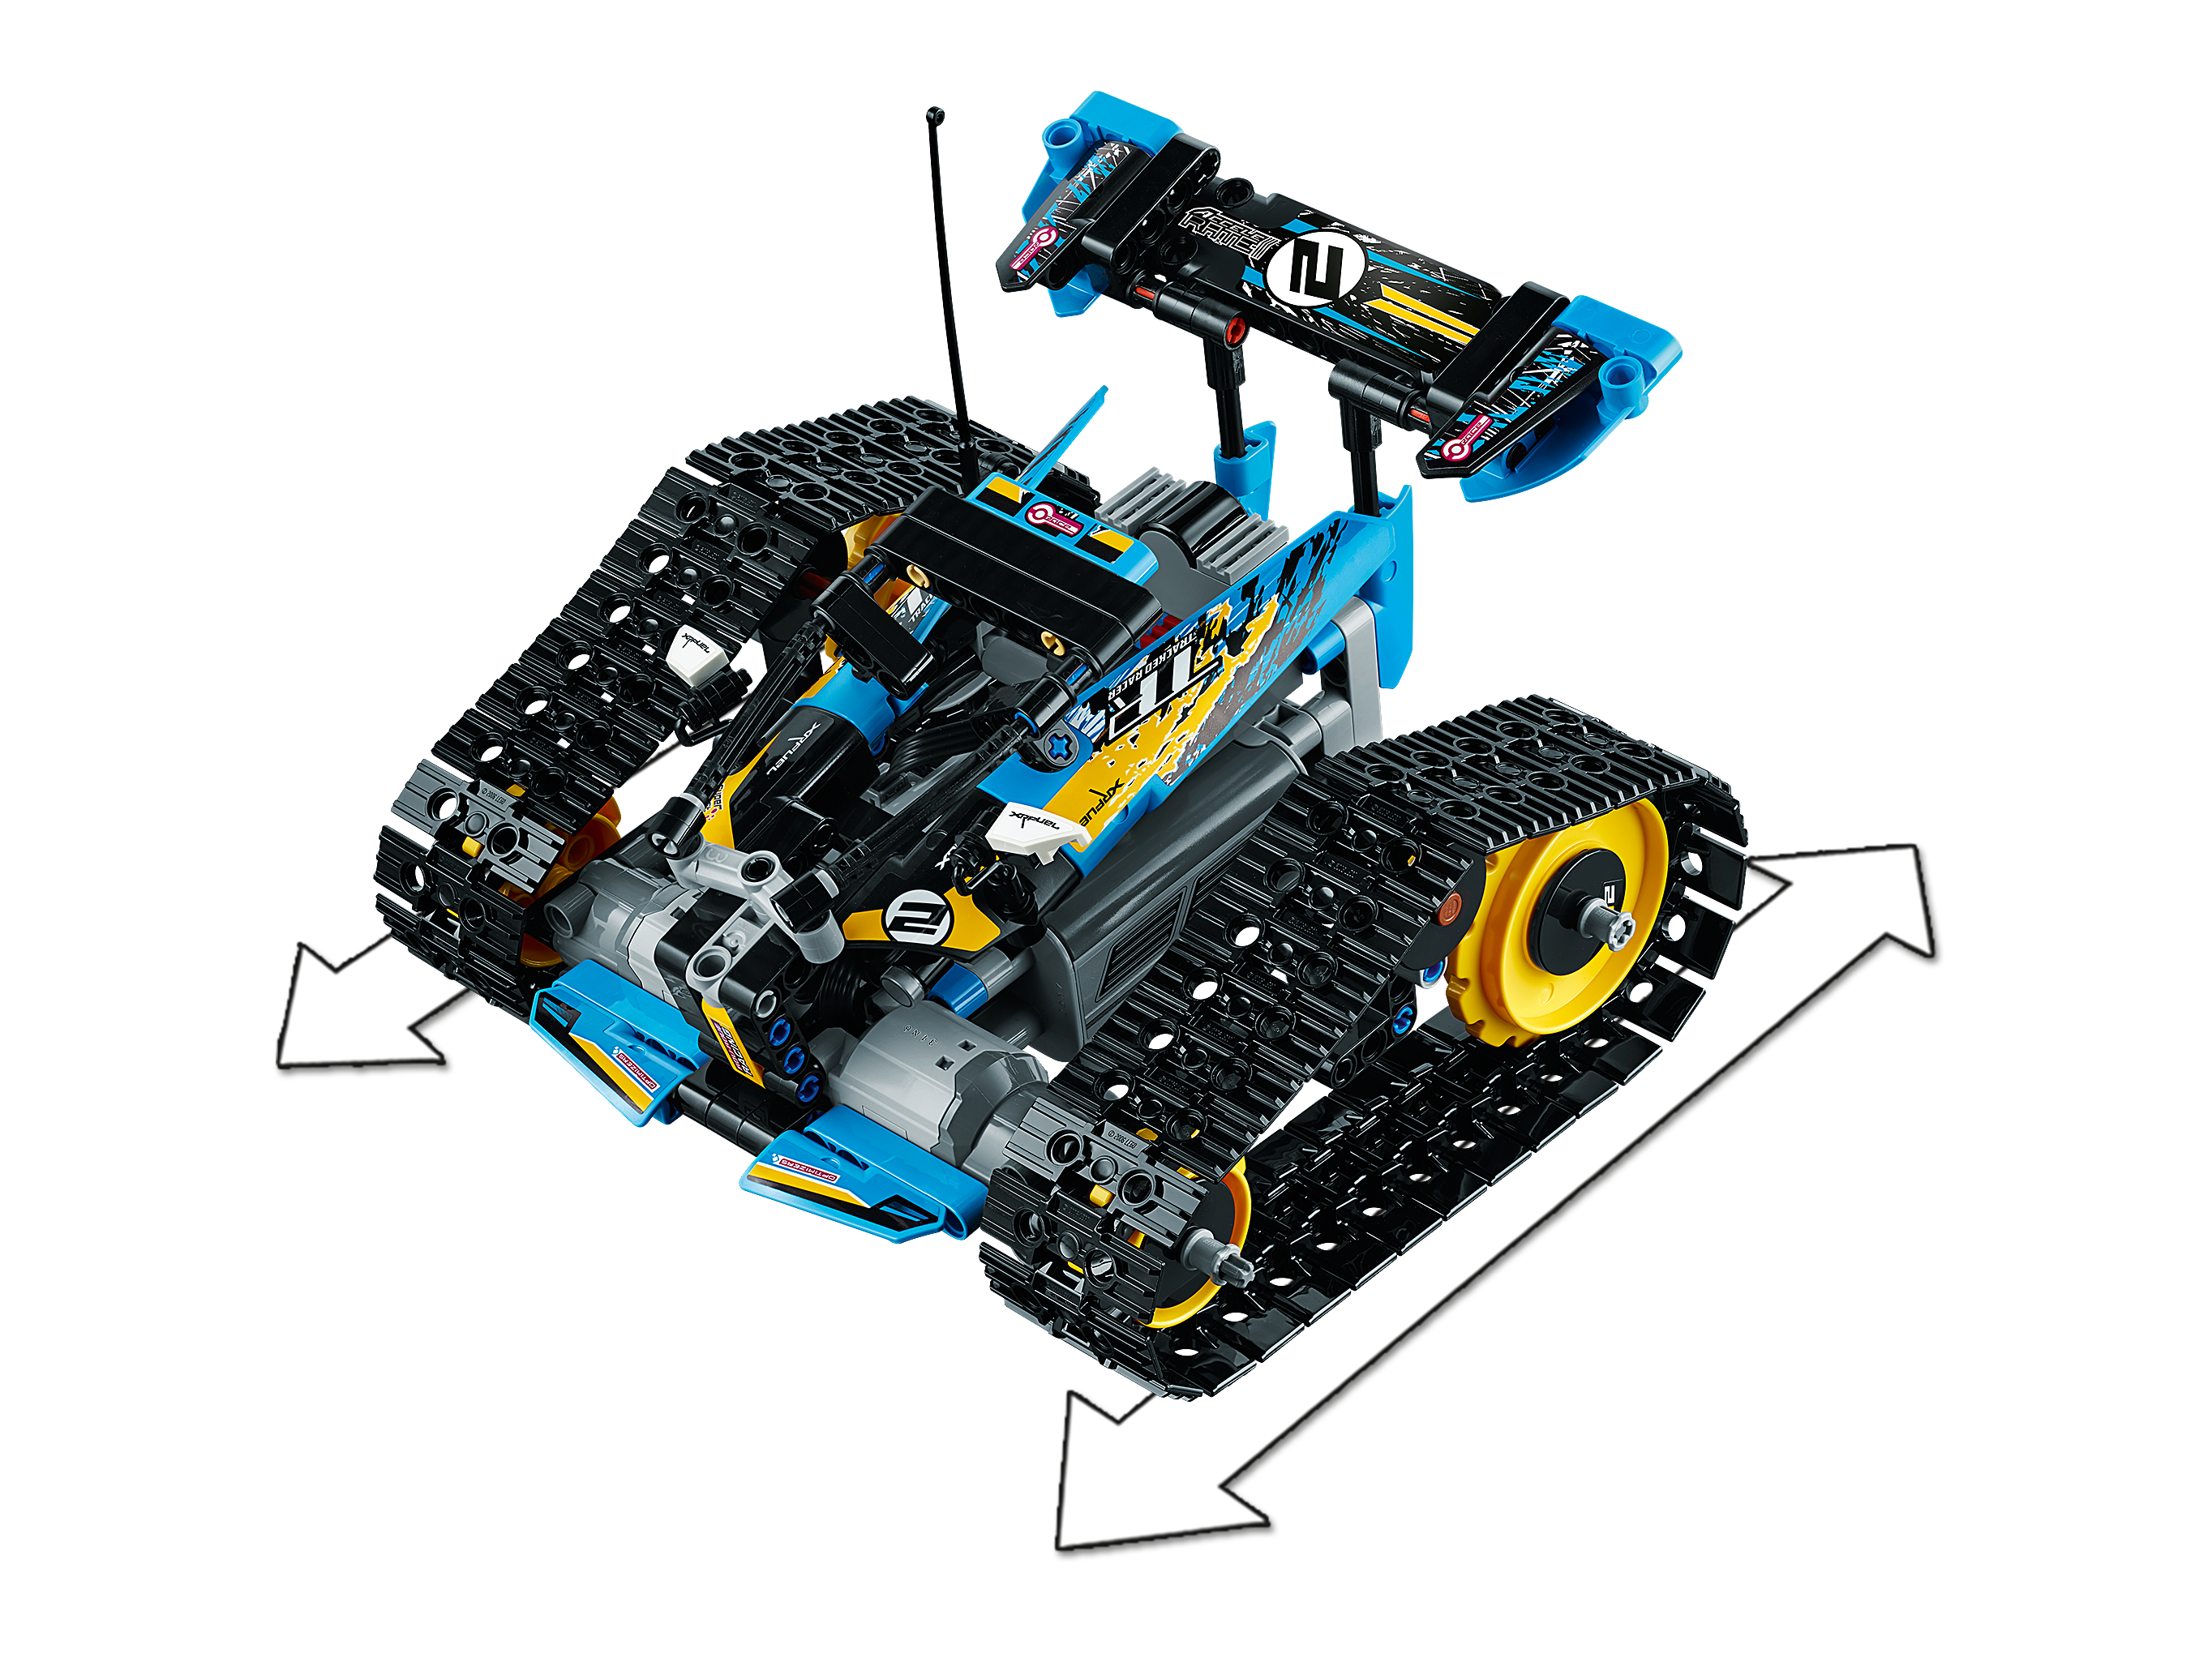 Remote Controlled Stunt Racer 42095 Technic Buy Online At The Official Lego Shop Us